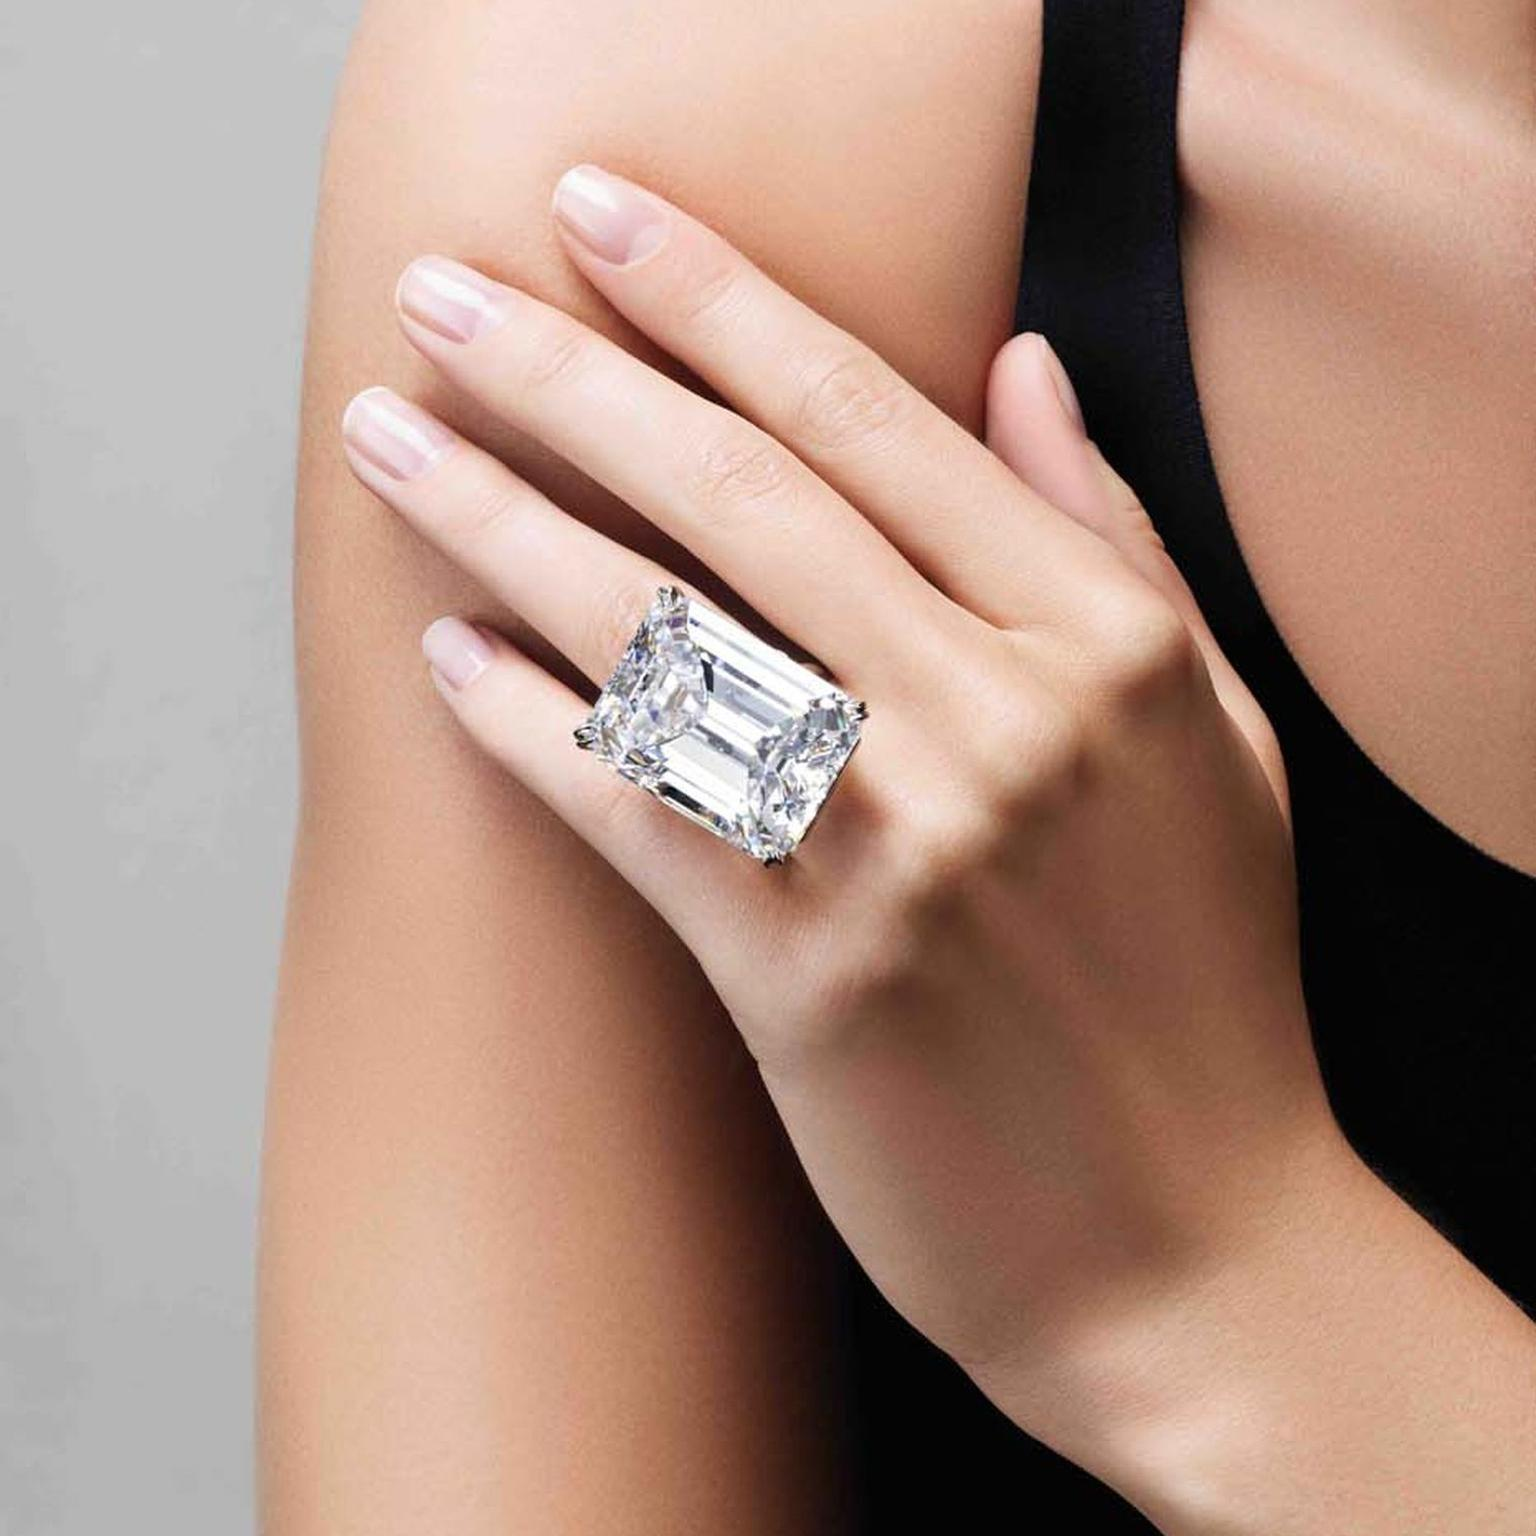 vintage diamond engagement rings and wedding bands dallas emerald cut wedding rings Vintage Diamond Engagement Rings and Wedding Bands Dallas Piktochart Infographic Editor